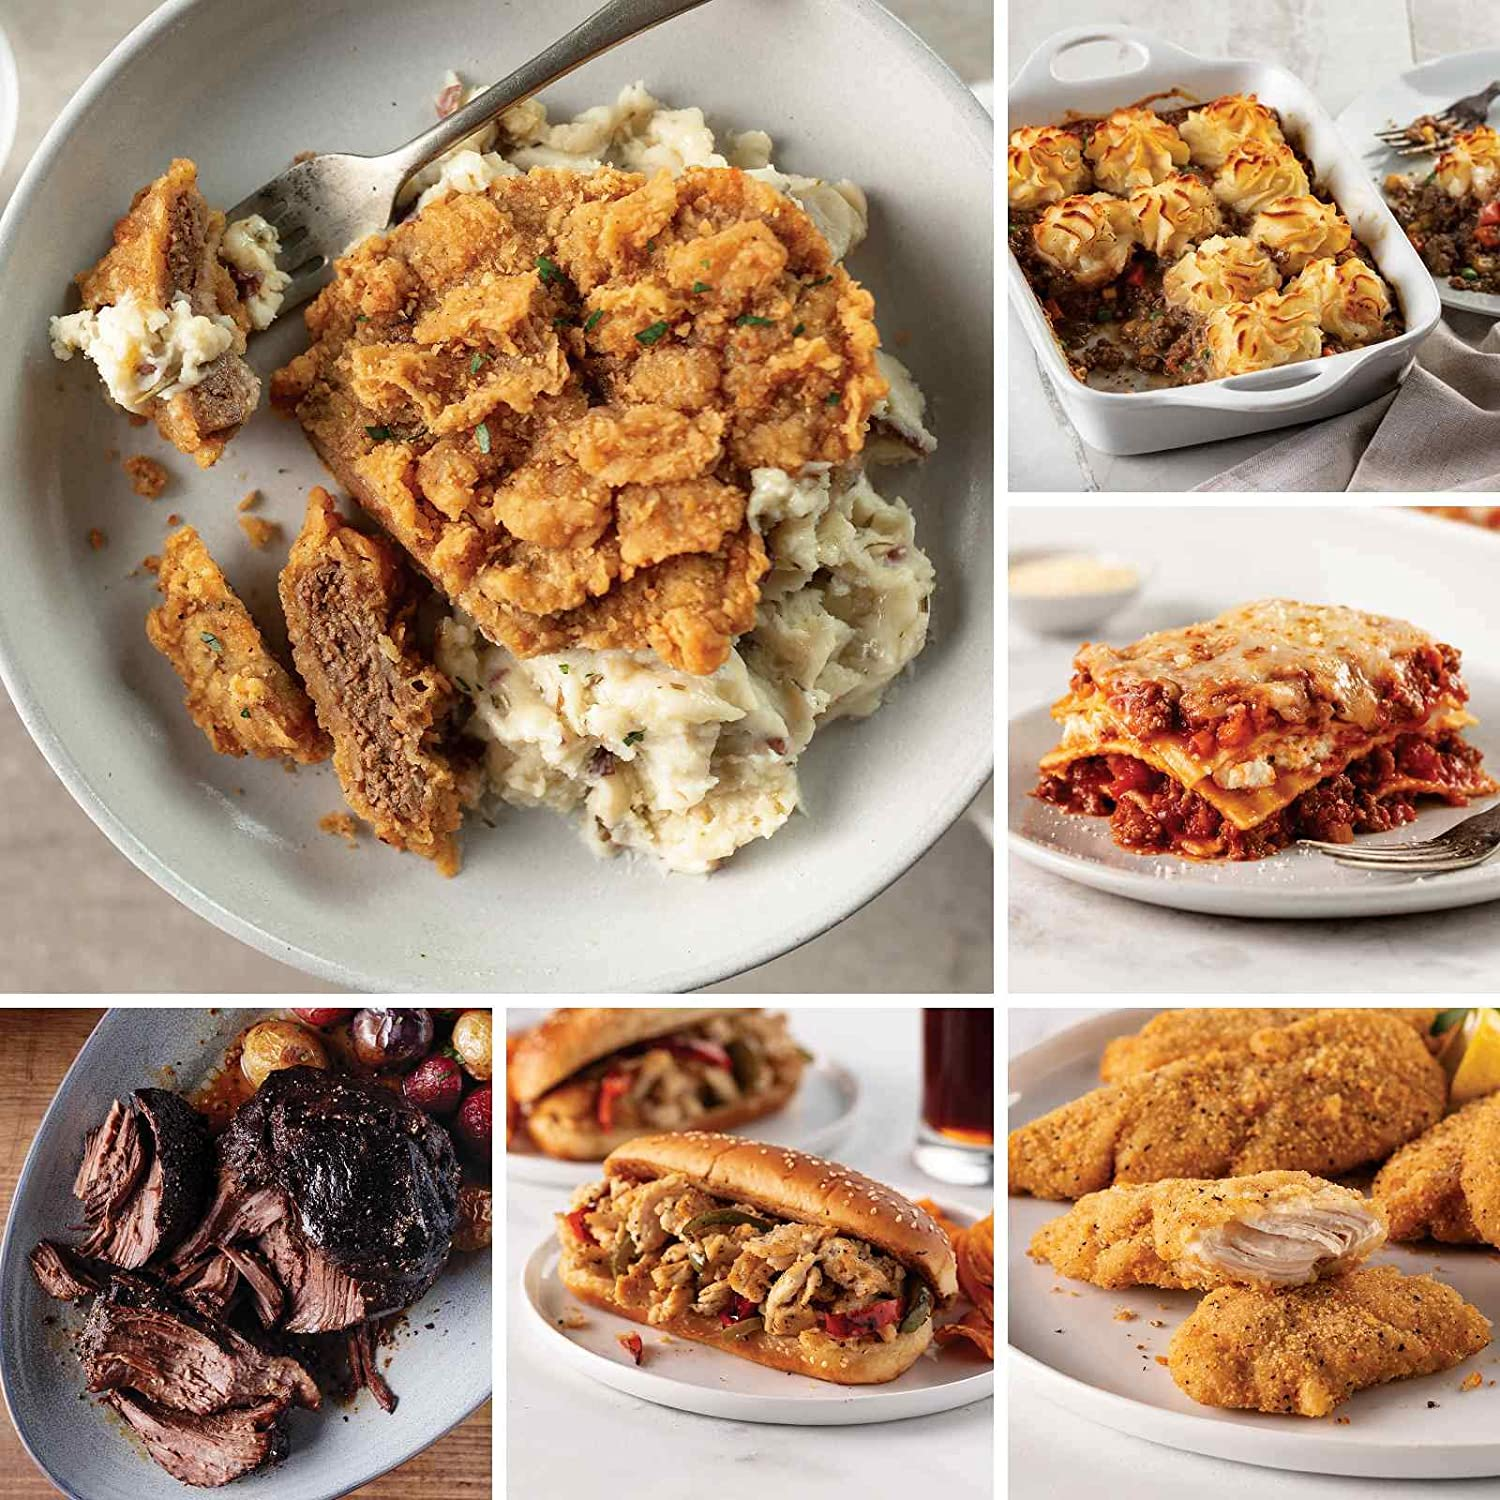 Gourmet Comforts Package from Fried Omaha Steaks Max 44% OFF Chicken Genuine